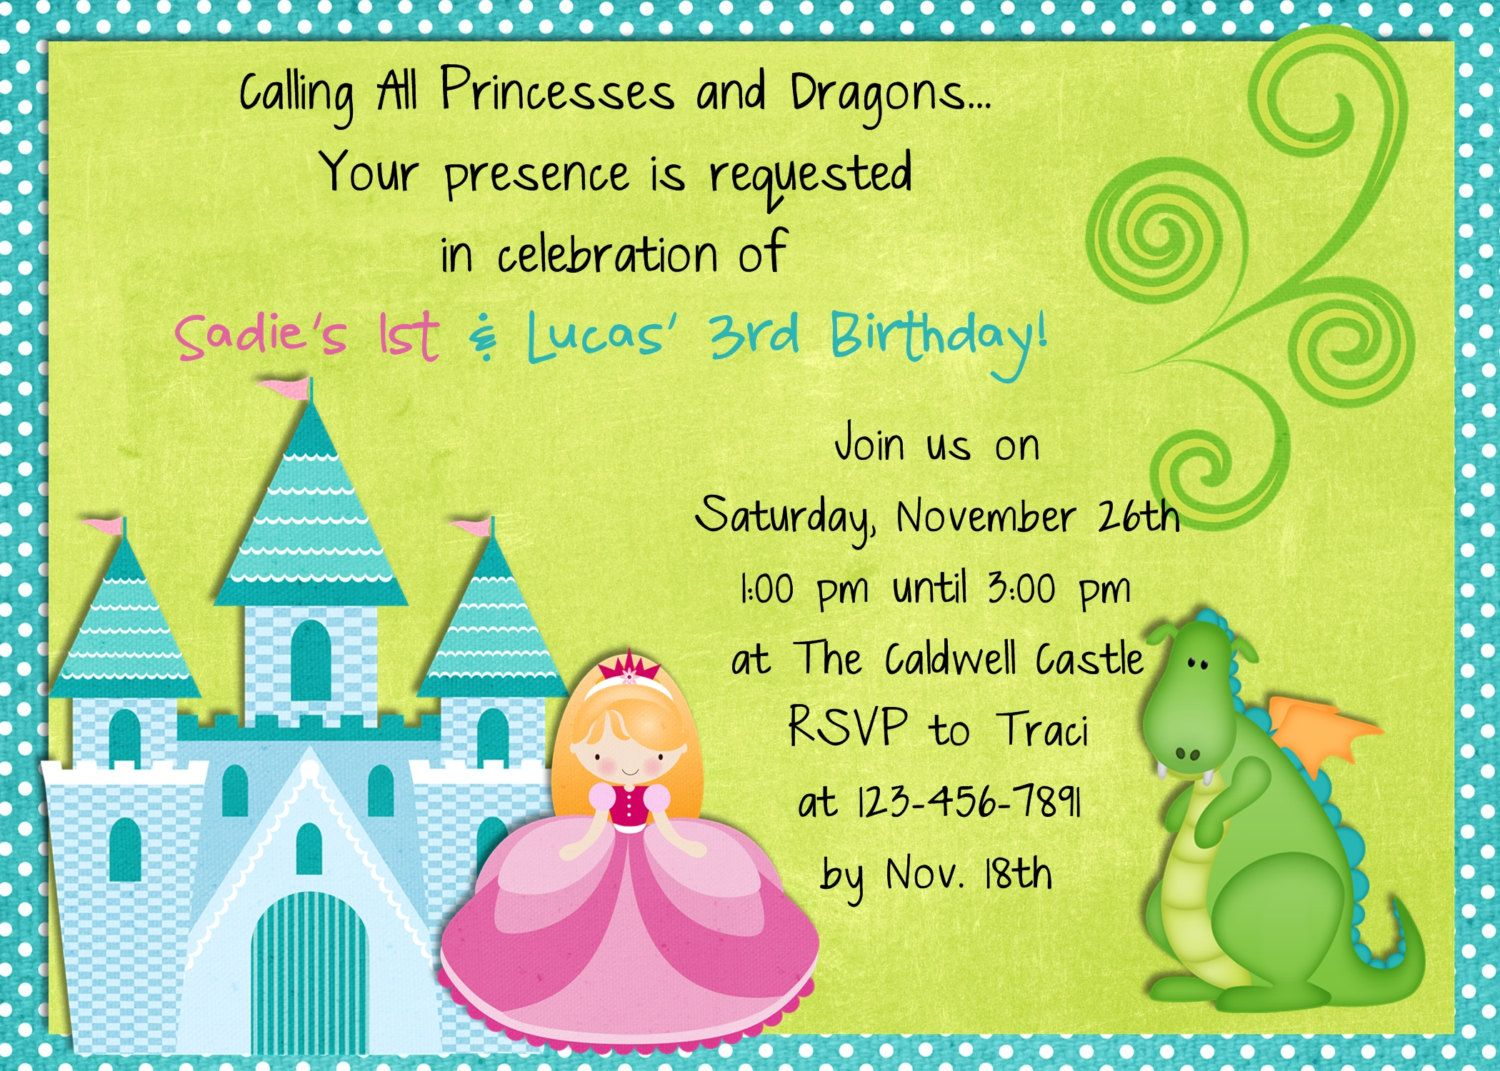 Princess dragon birthday invitation custom you print or email princess dragon birthday invitation custom you print or email 1600 via etsy stopboris